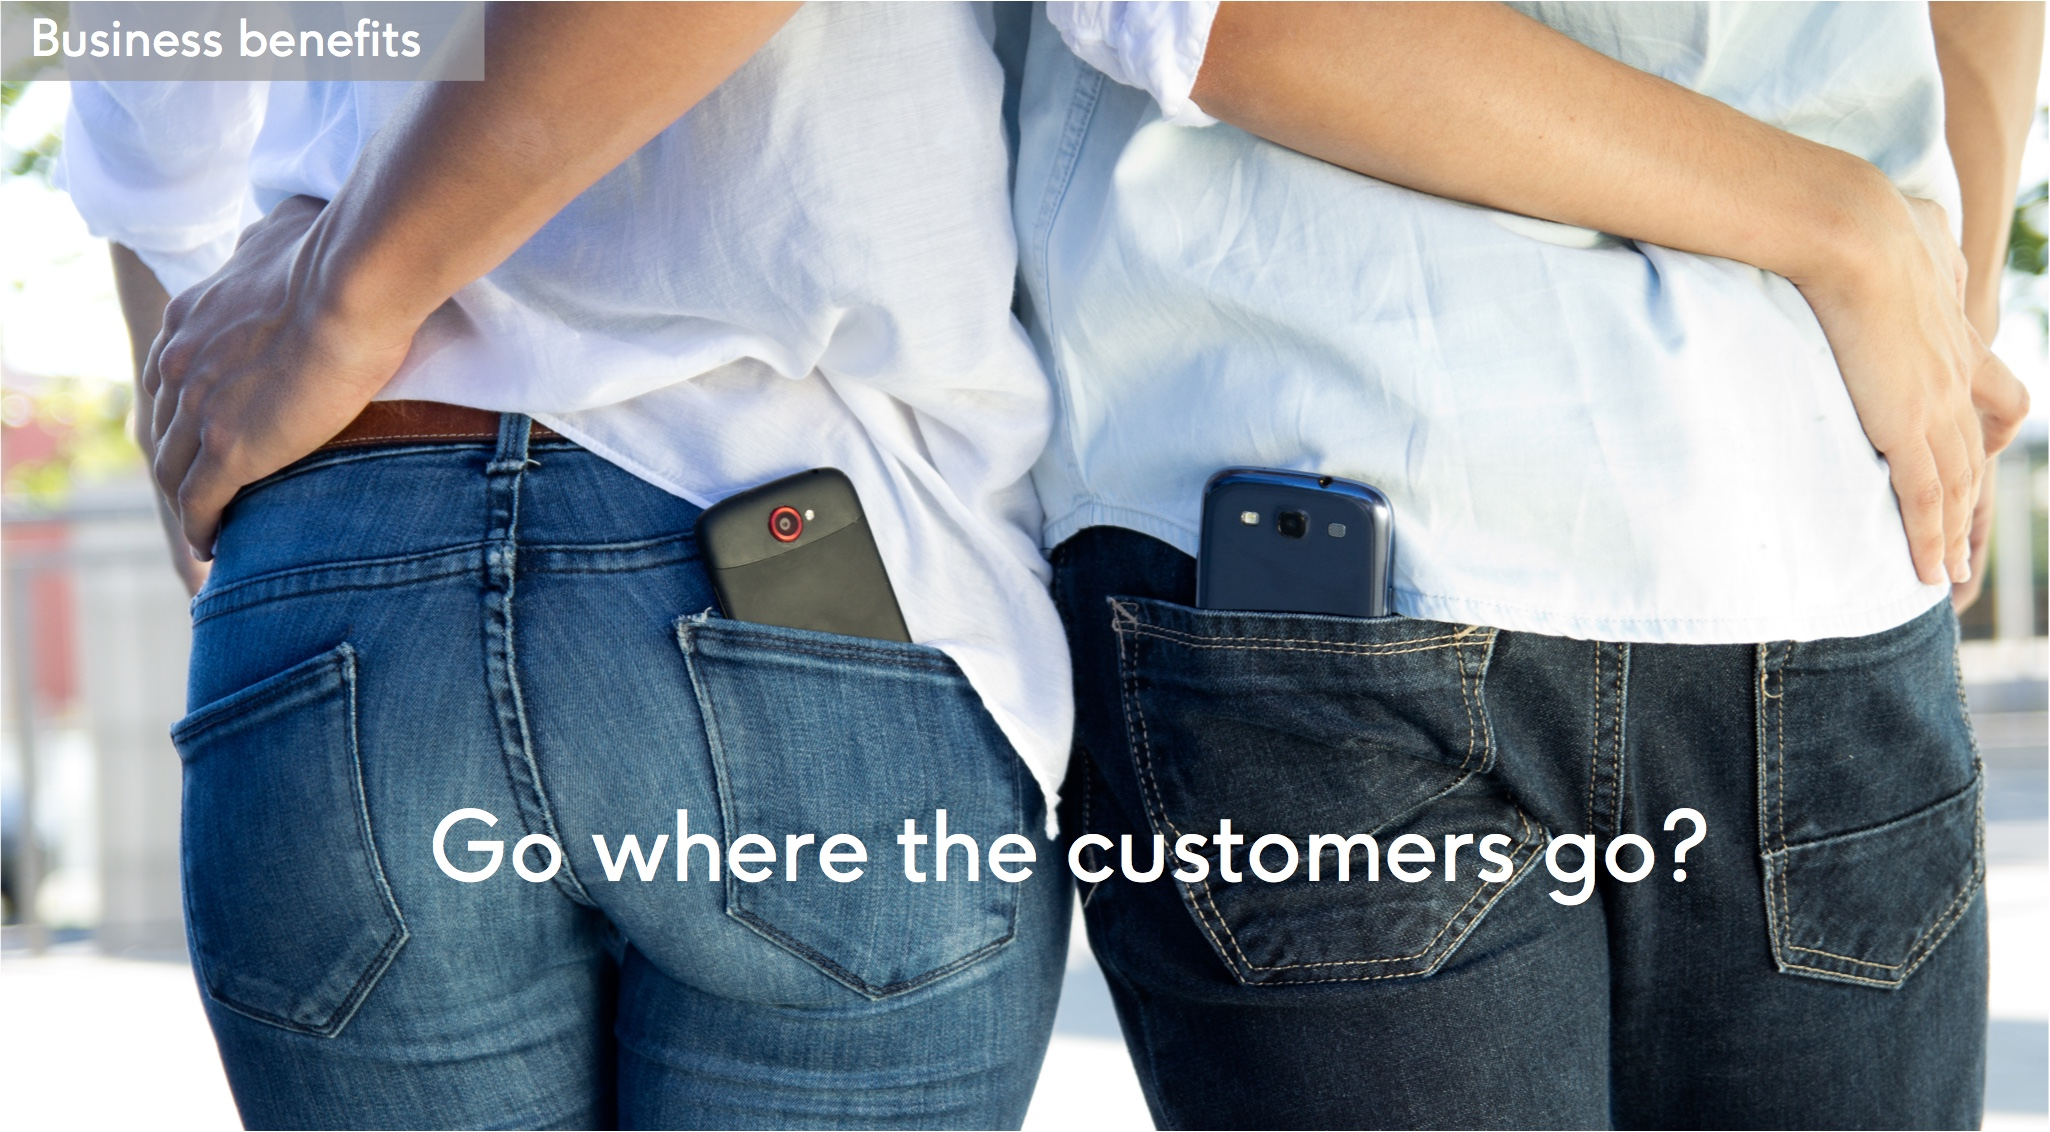 Business benefit: Go where the customers go?